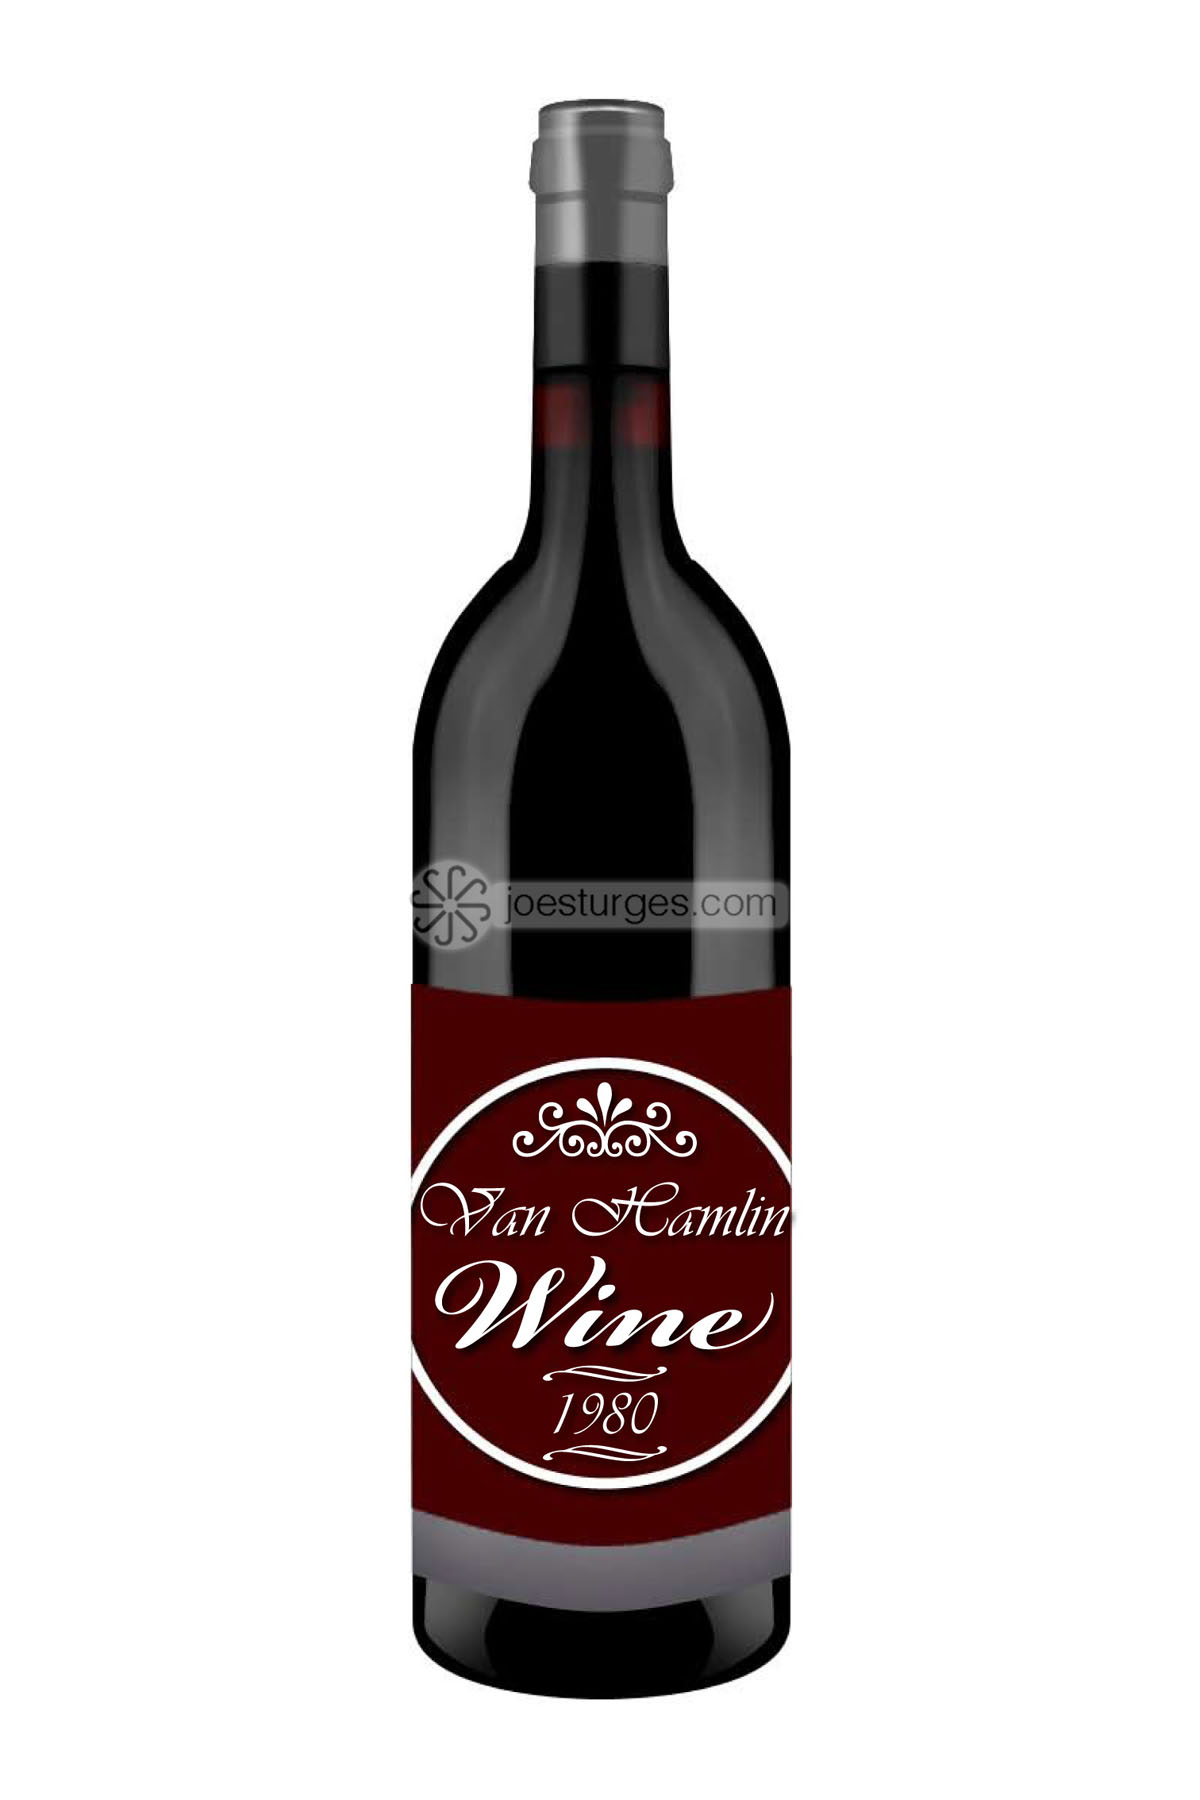 Wine Bottle Design Mock up for client.